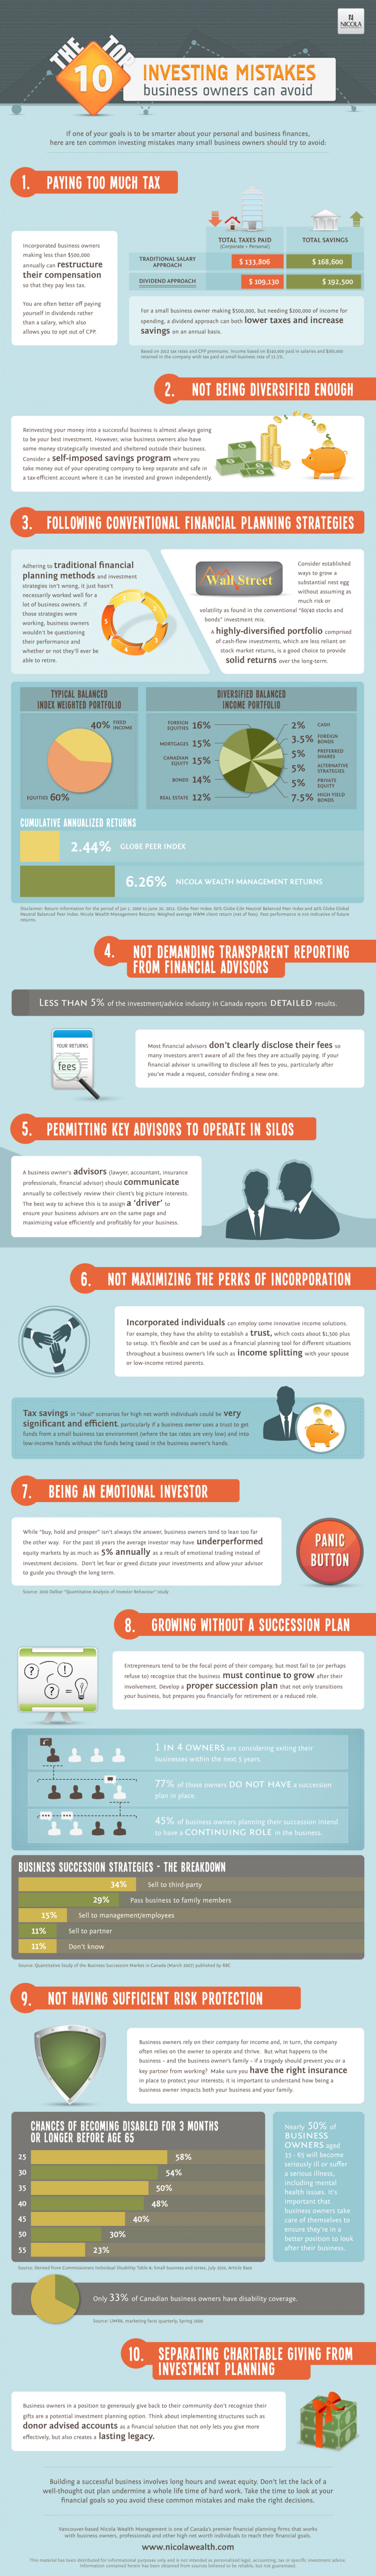 Top 10 investing mistakes business owners can avoid Infographic